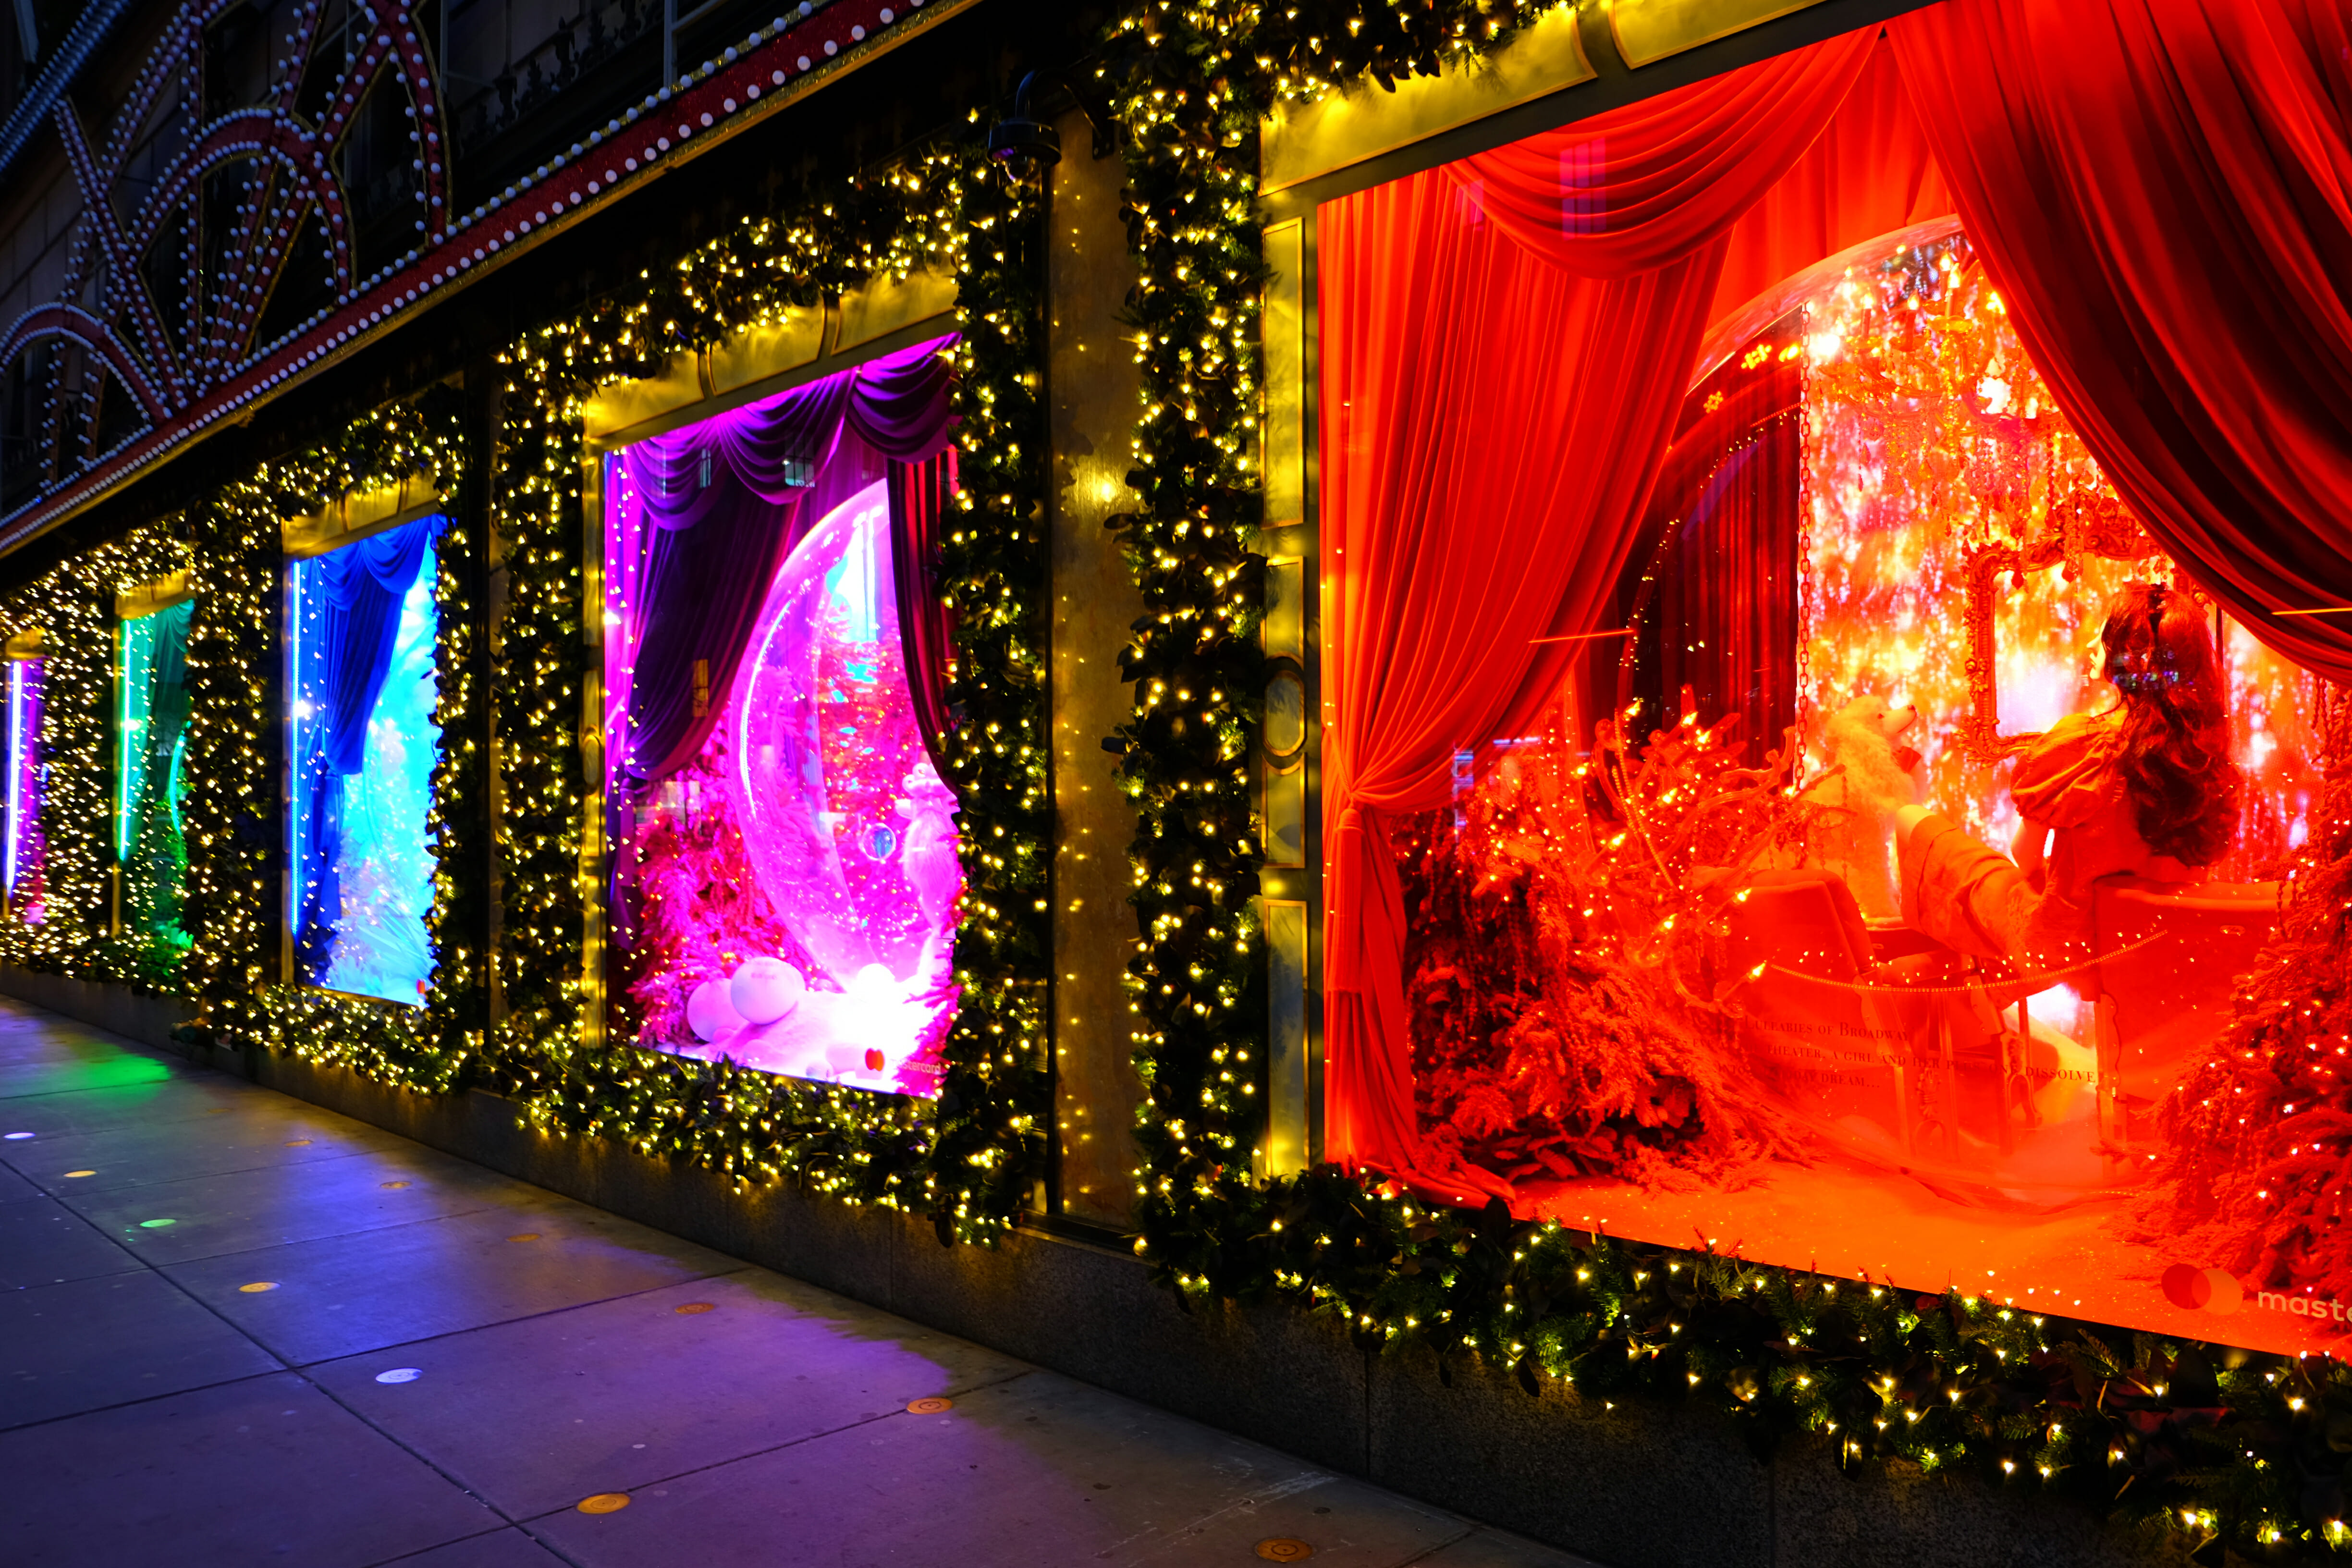 Saks on Fifth Christmas Window Decorations – High Quality Wallpaper